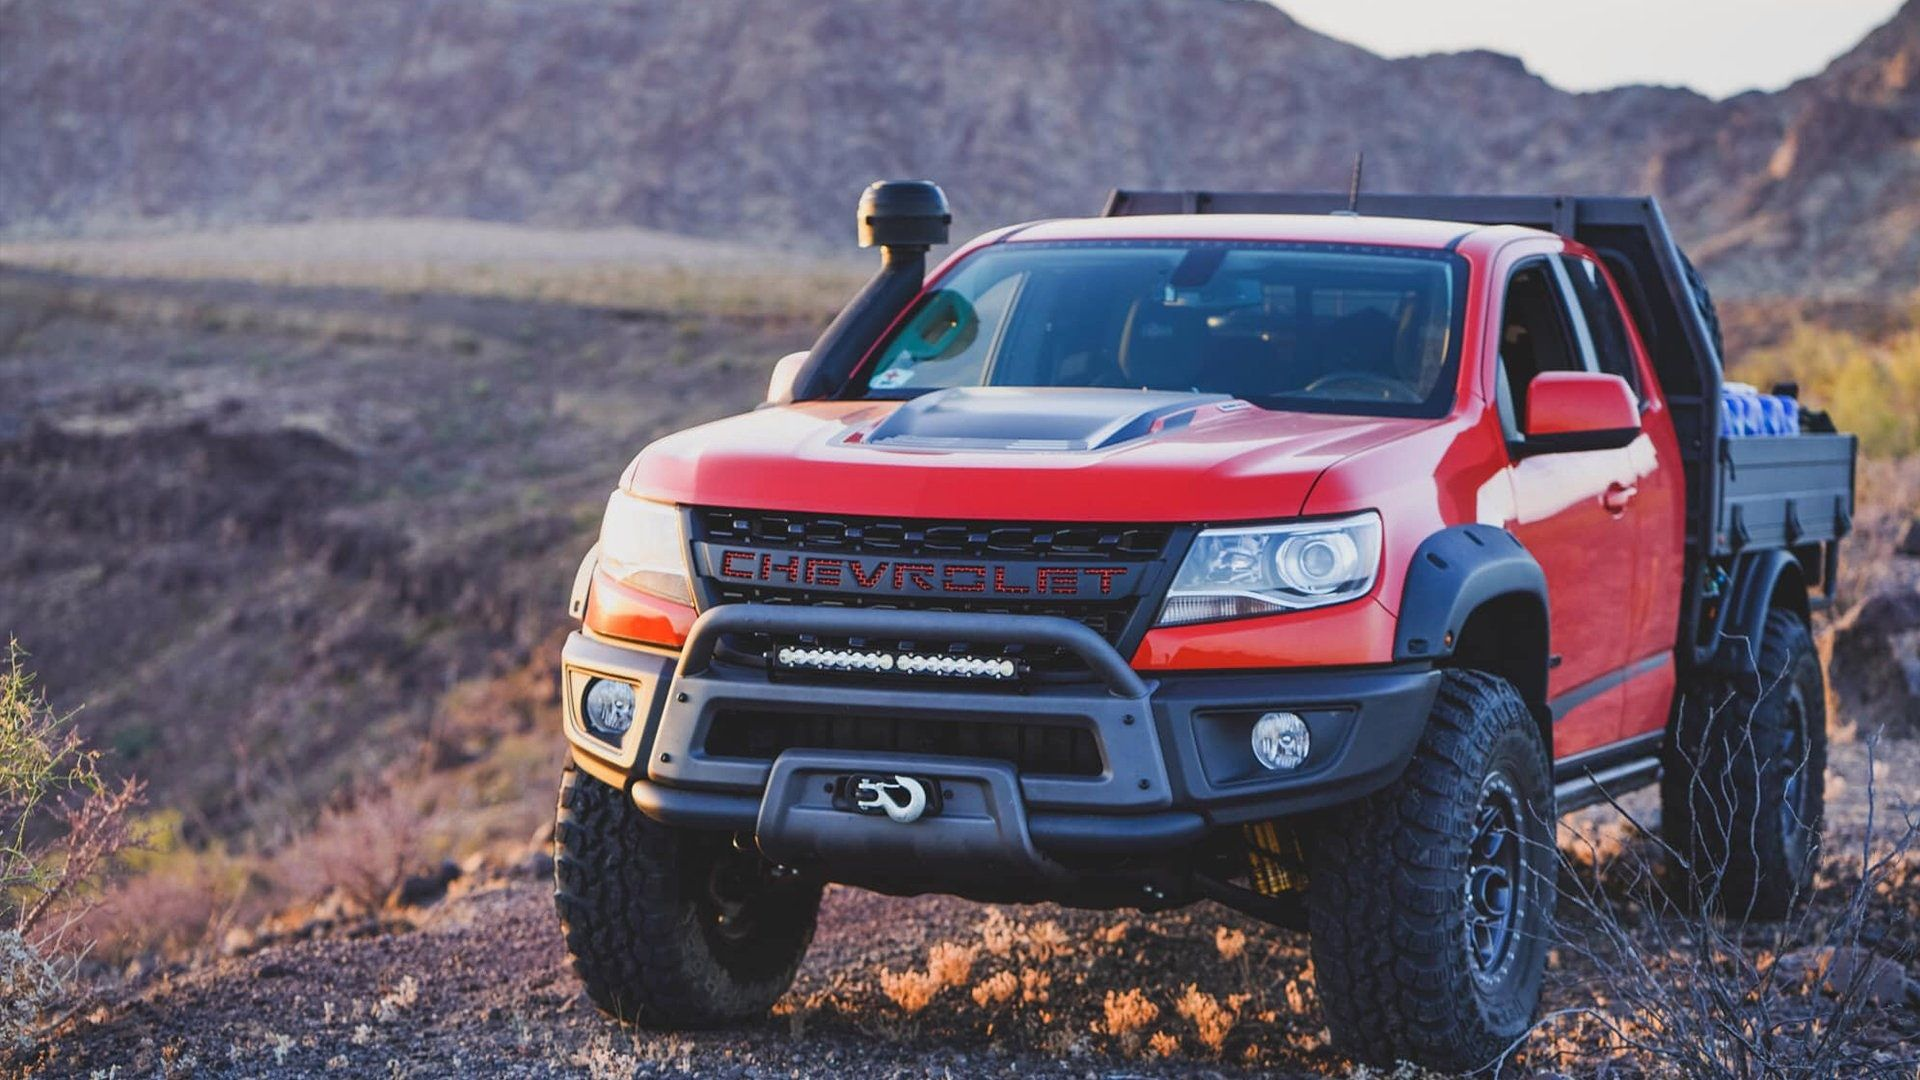 2019 Chevy Colorado Zr2 Bison Tray Bed Concept Is An